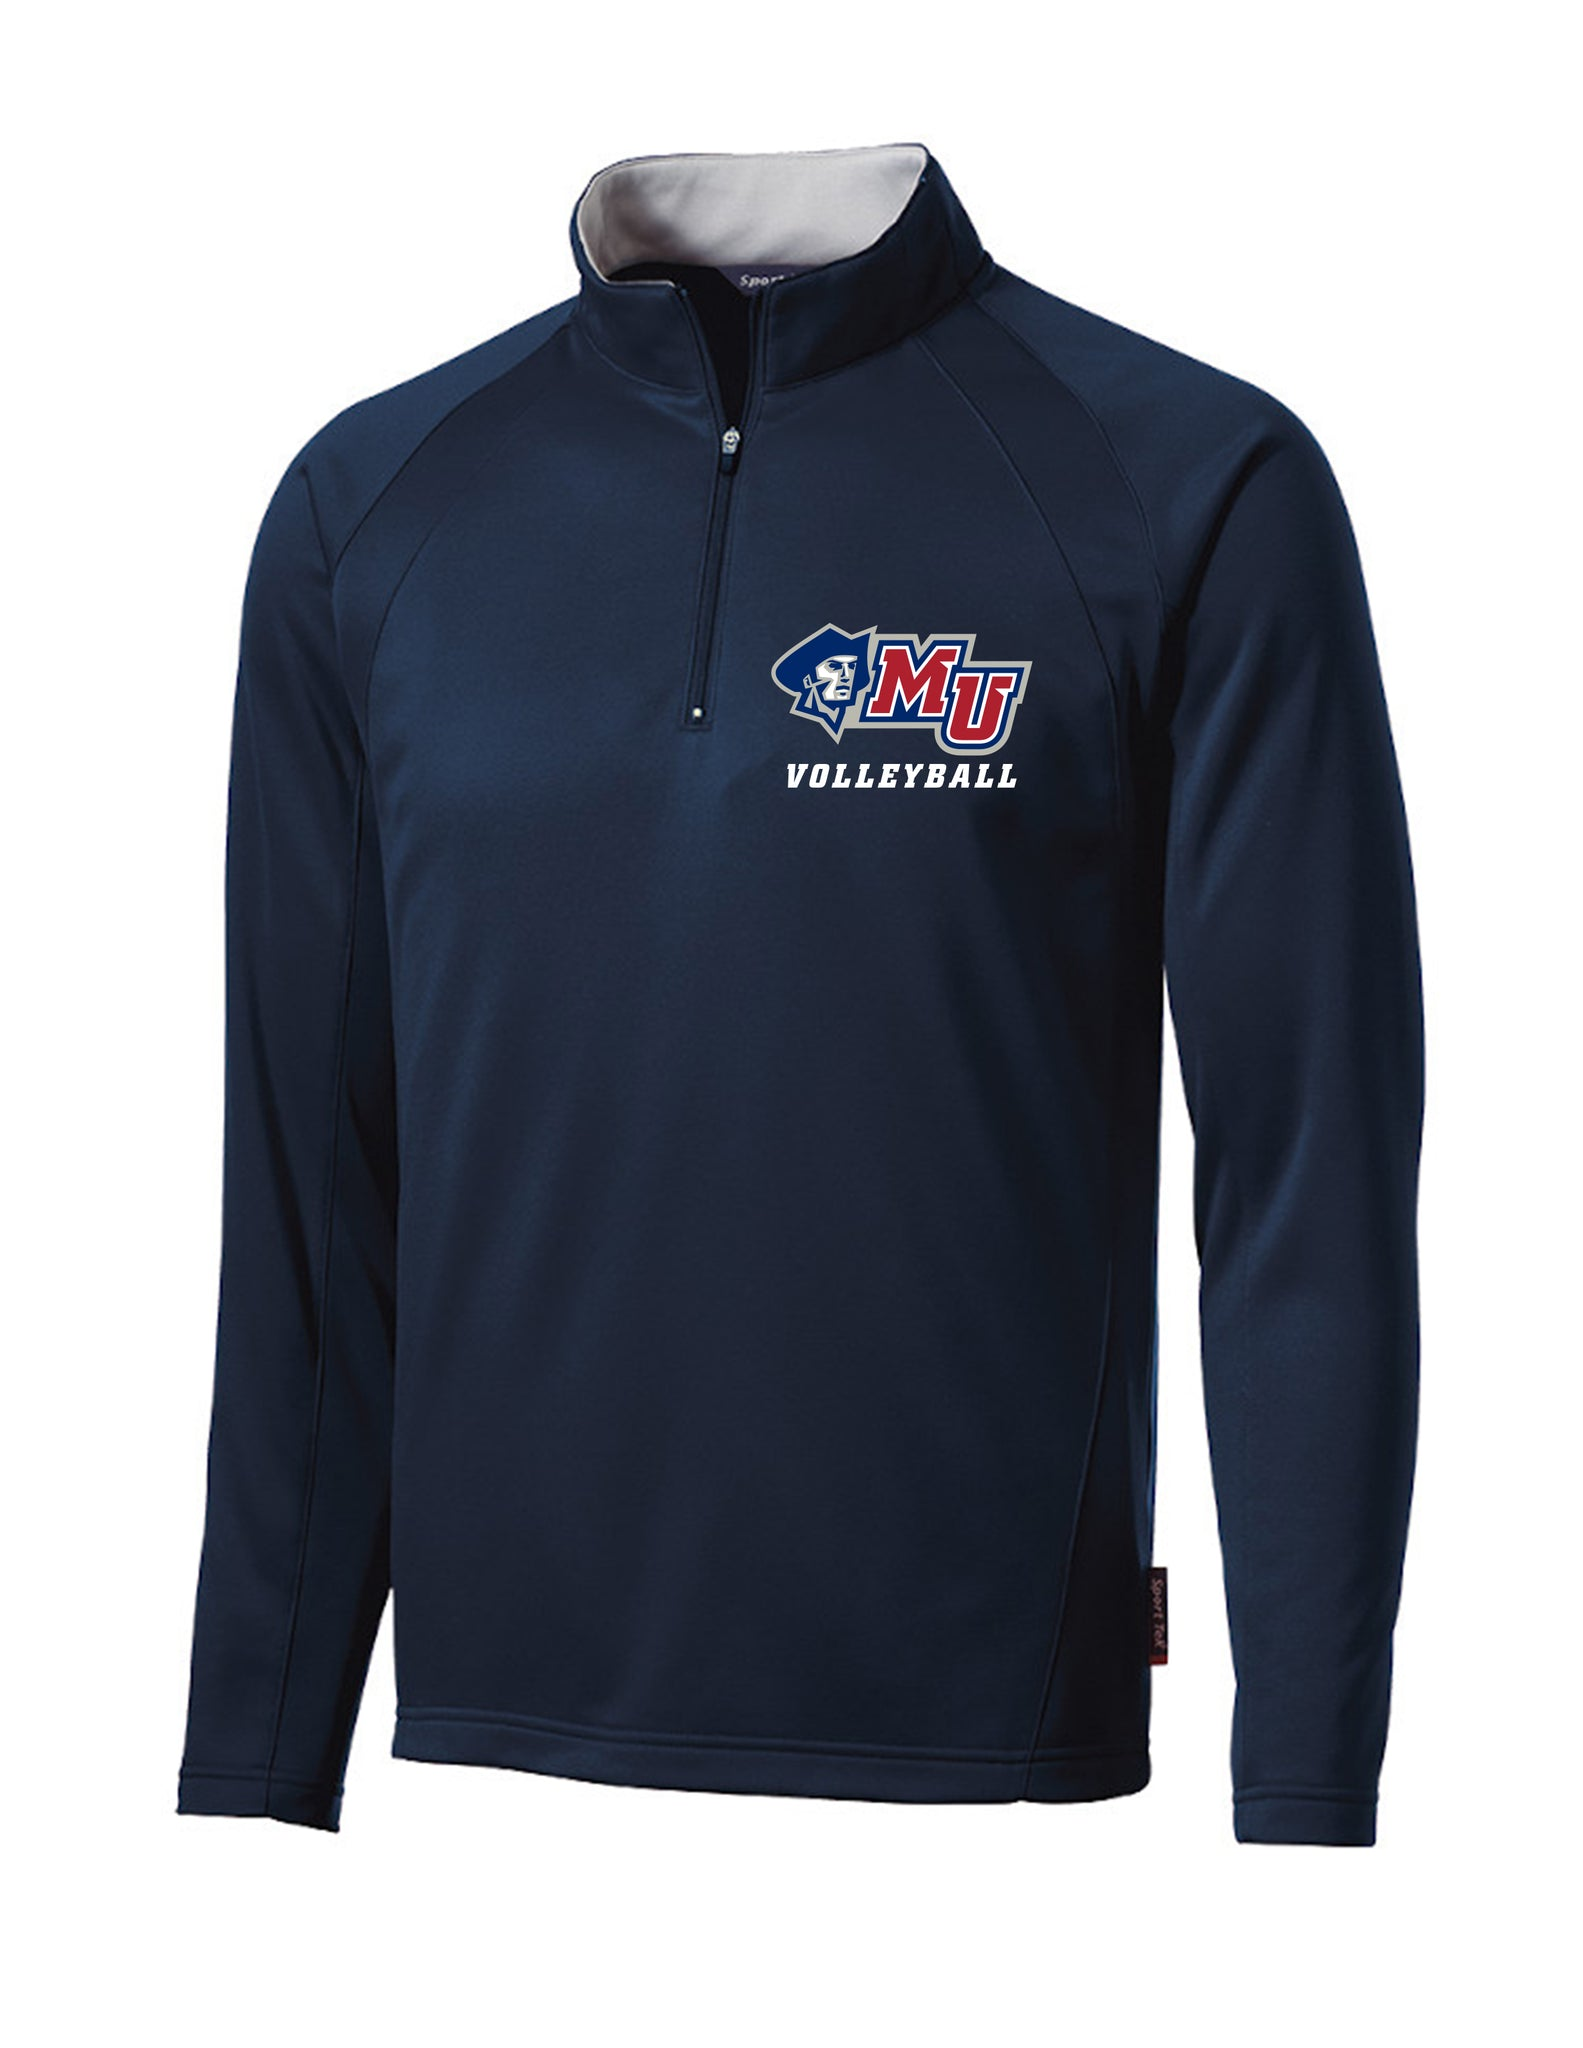 Malone Volleyball Mens 1/4 Zip